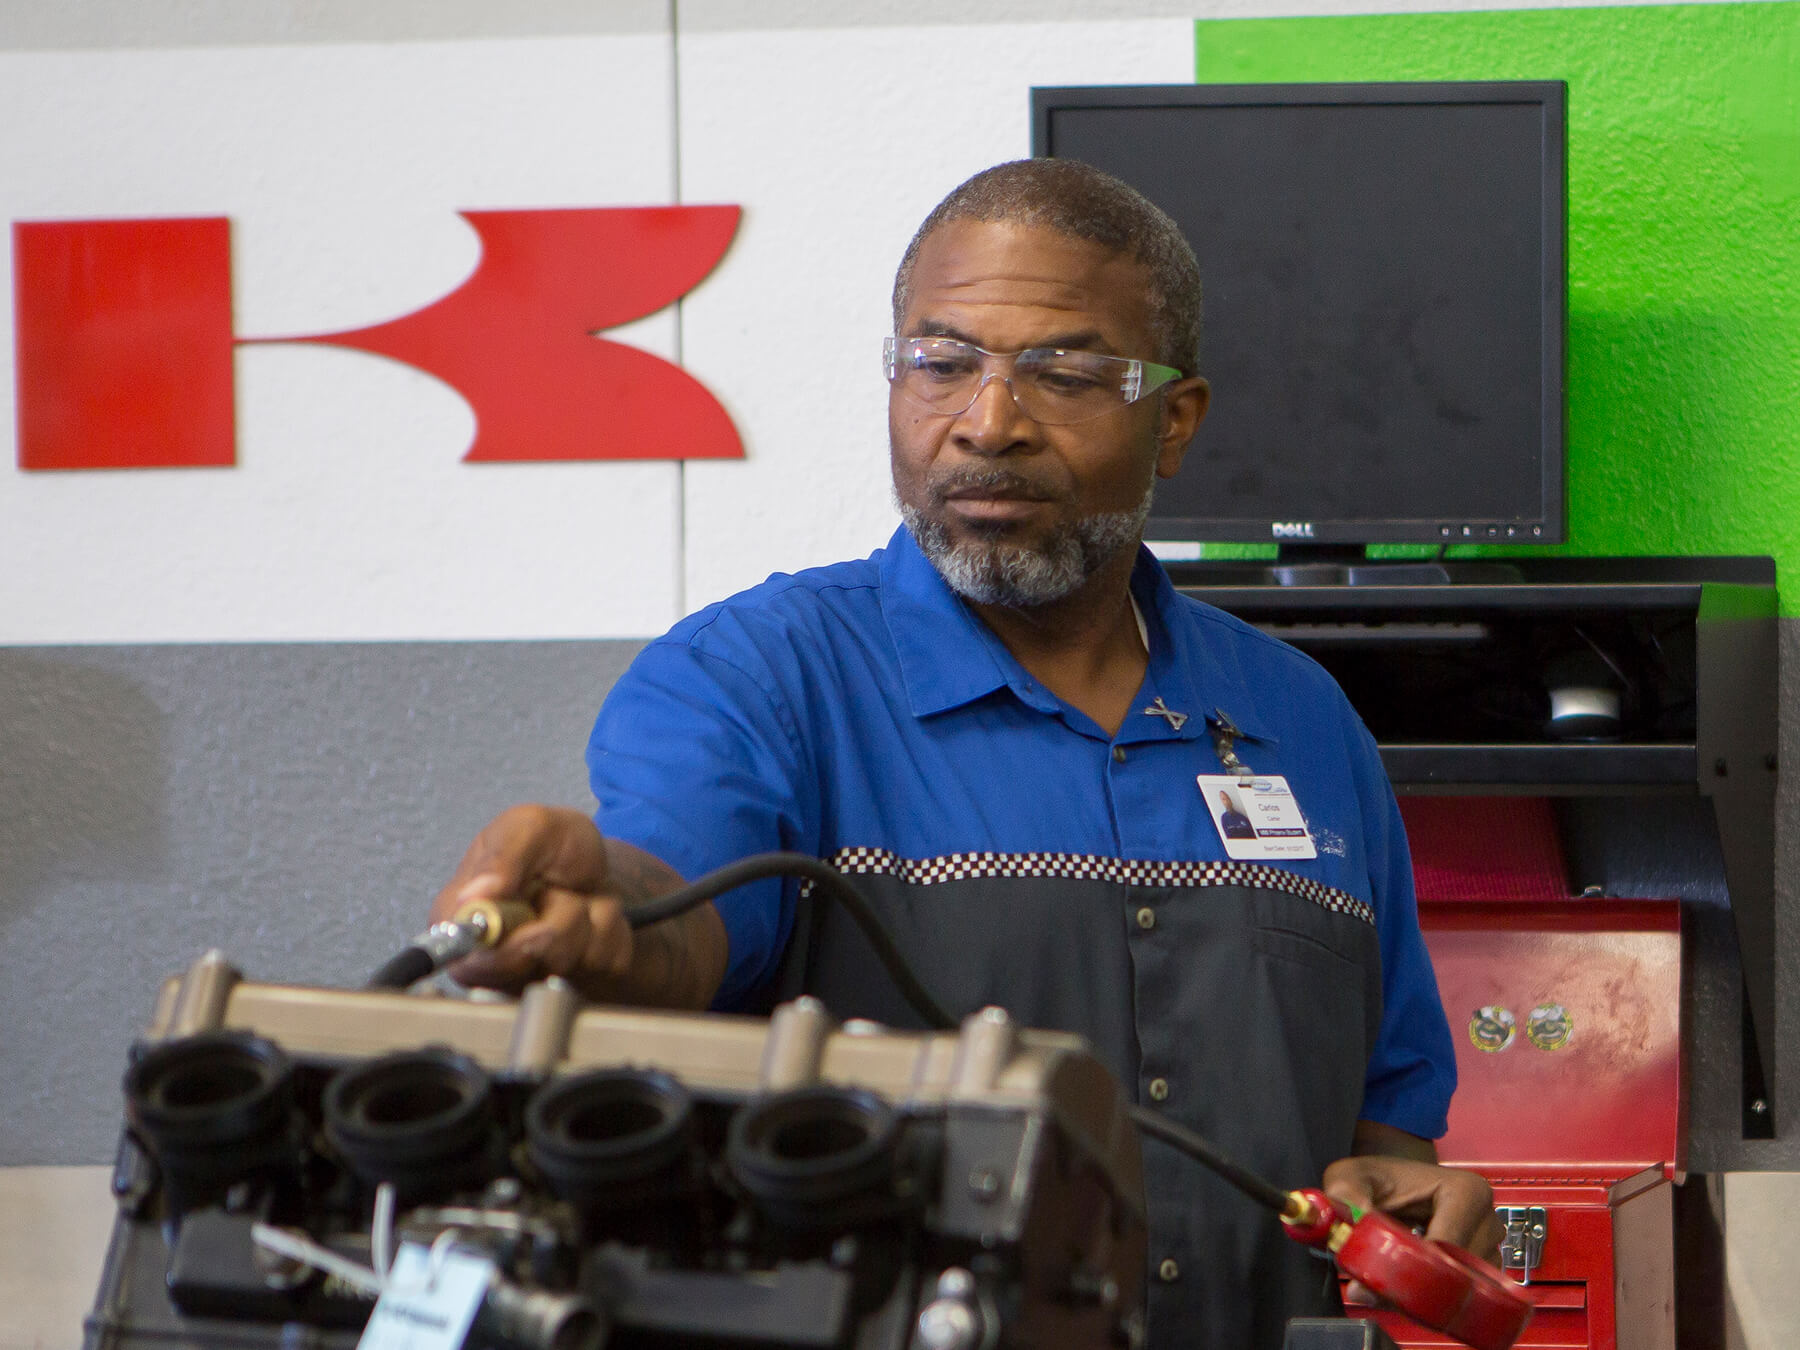 MMI instructor working on an engine in the Kawasaki Moto lab